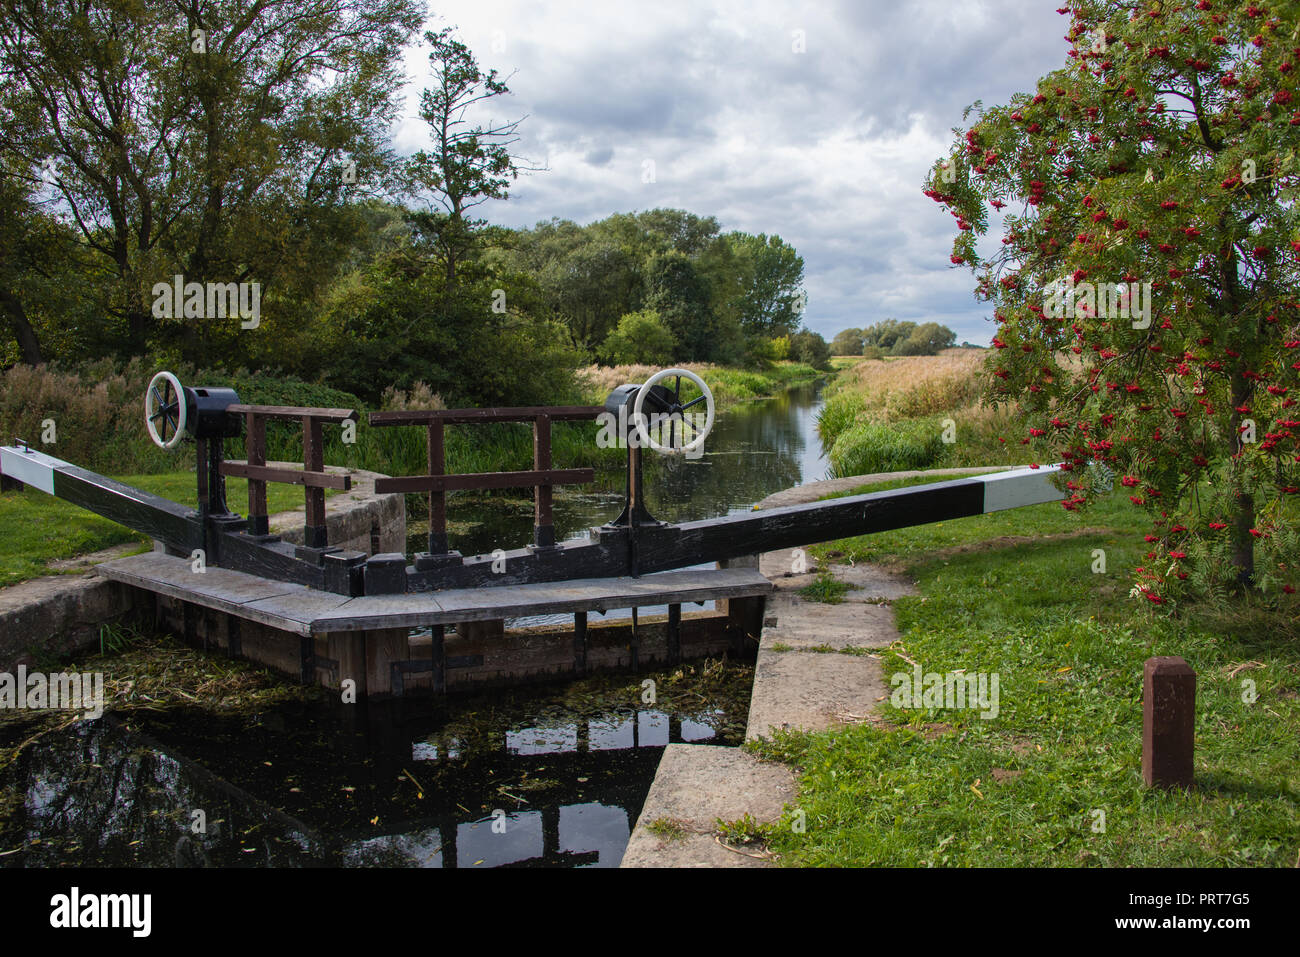 Restoration on Gardham lock gate on Pocklington Canal carried out by Pocklington Canal Amenity Society - Stock Image